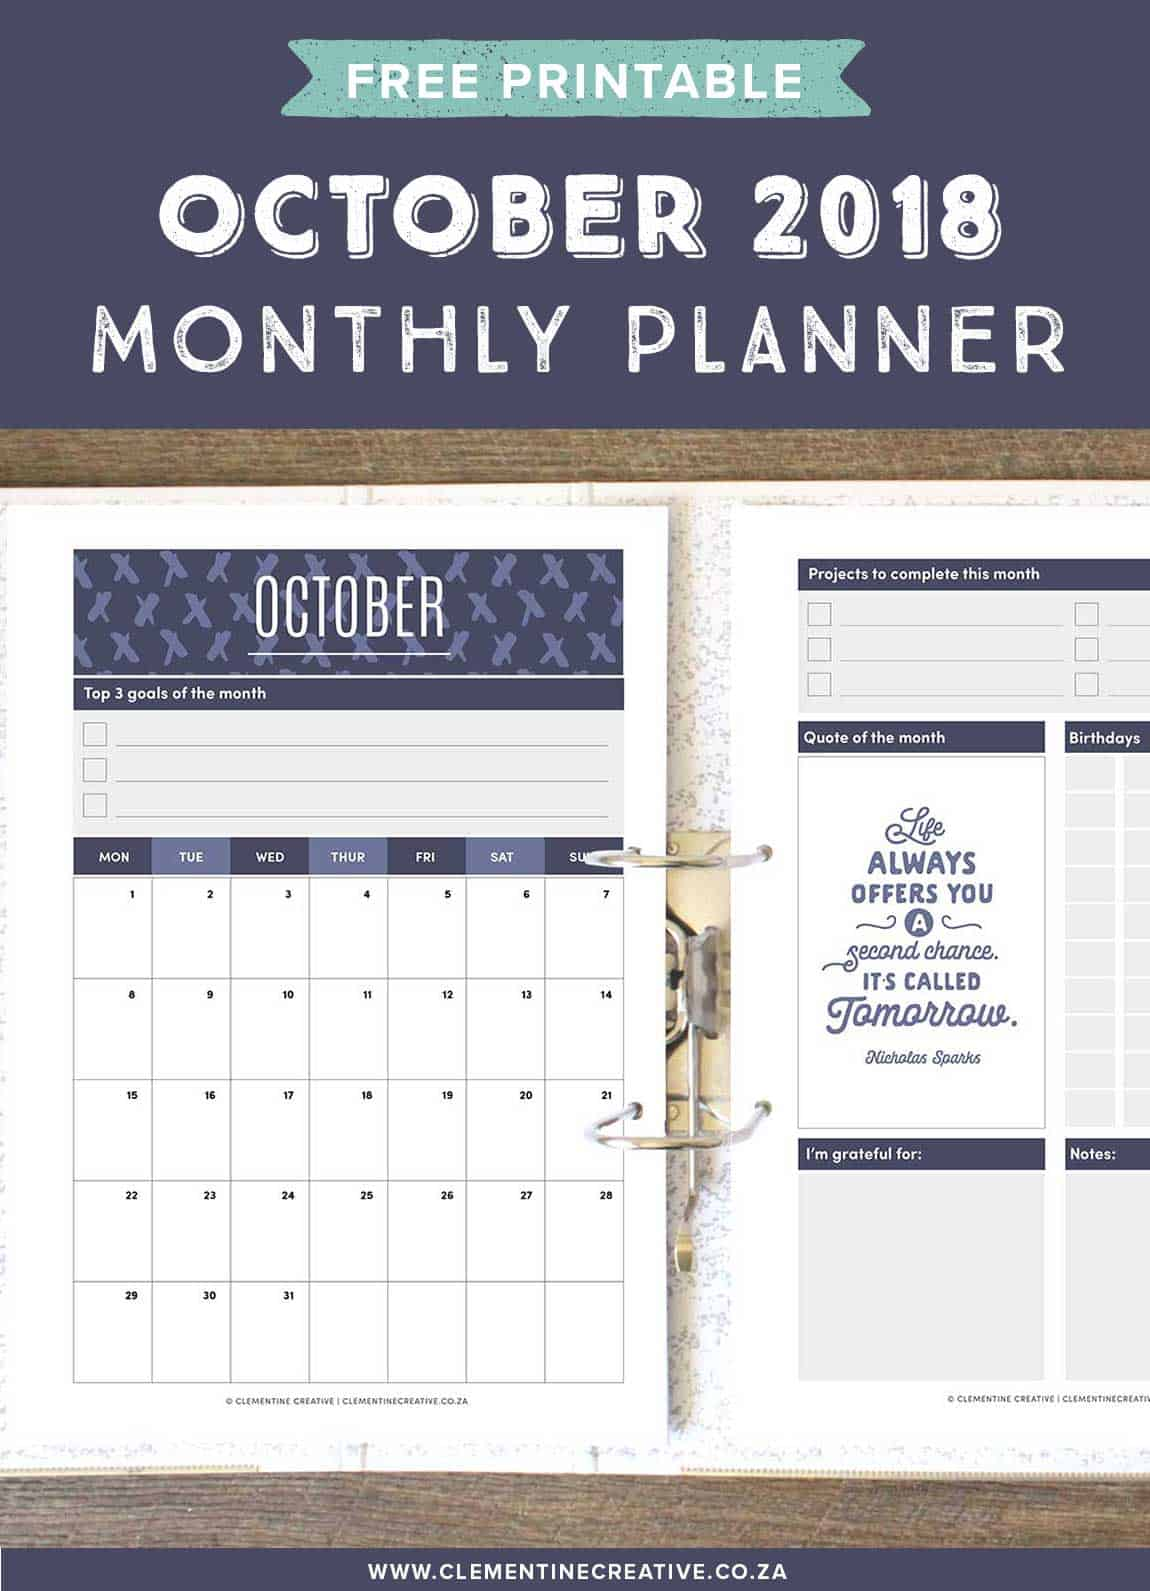 October 2018 free printable monthly planner